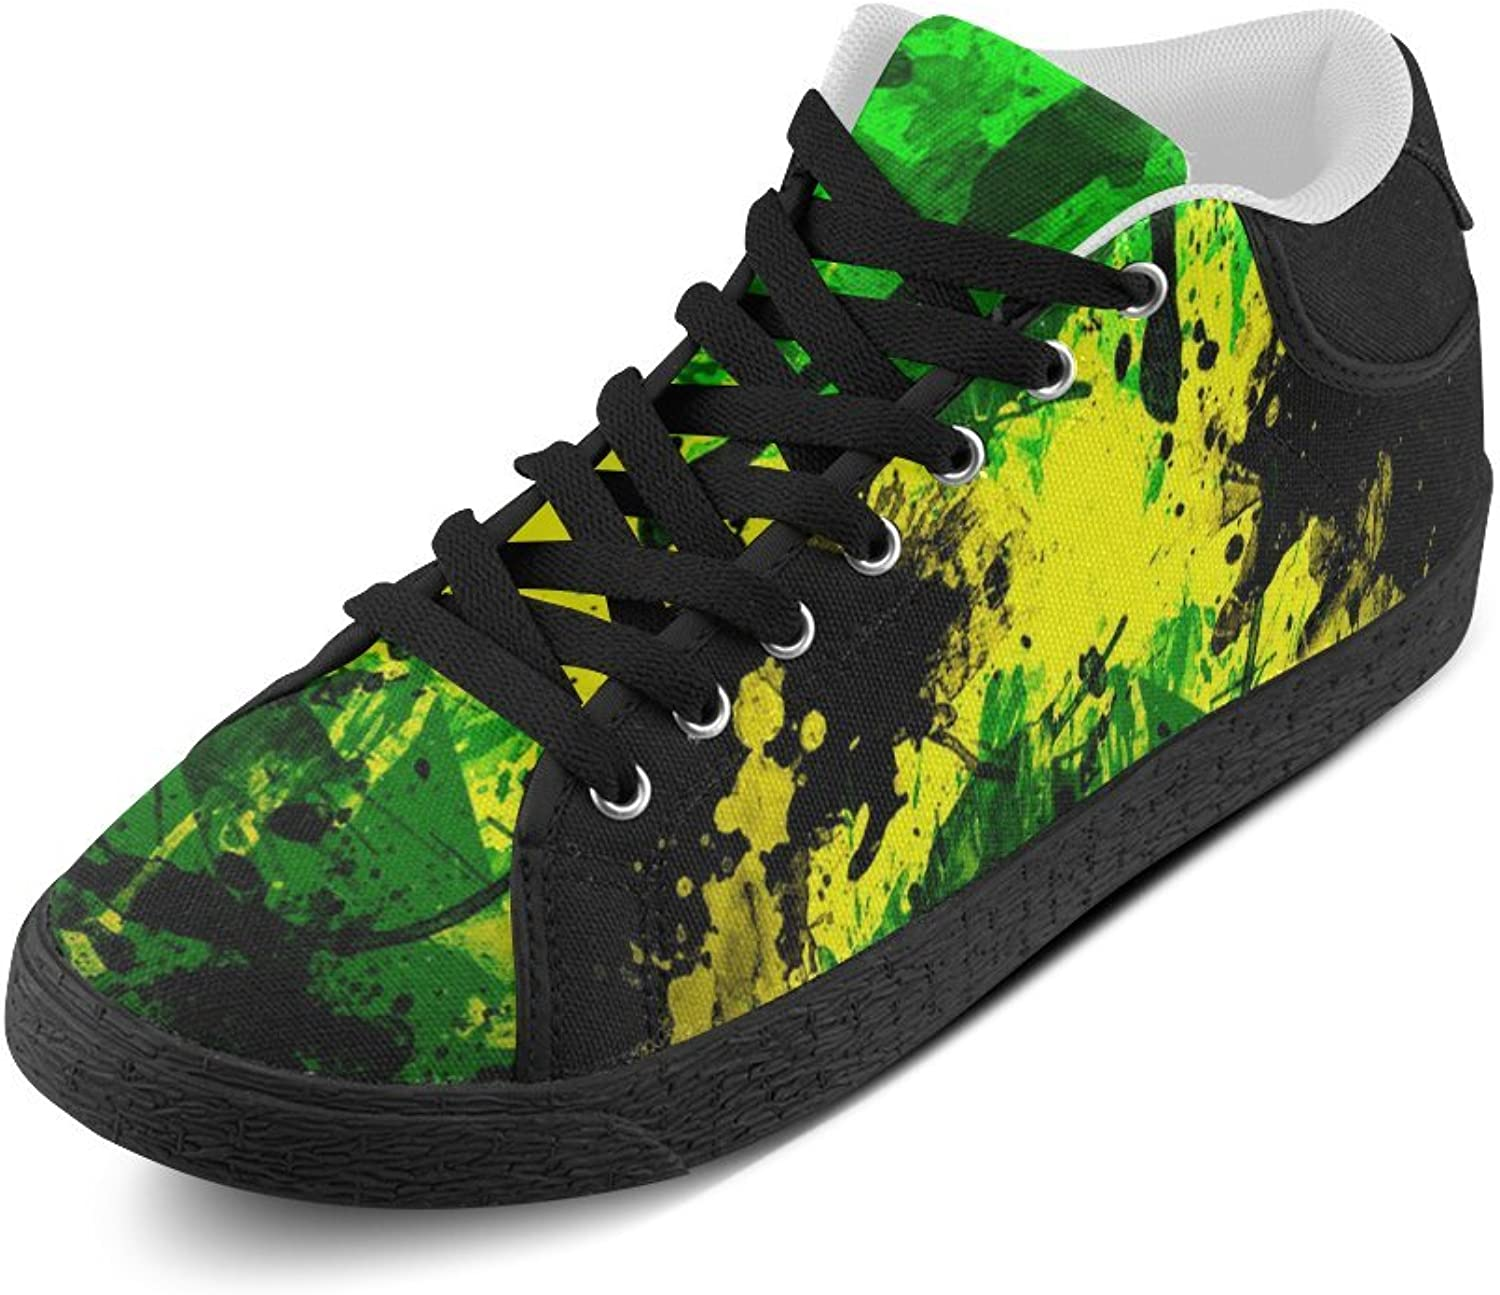 N.Y.L.A. ADE Flags Jamaica Hgh Contrast Image Women's Chukka Canvas shoes M003